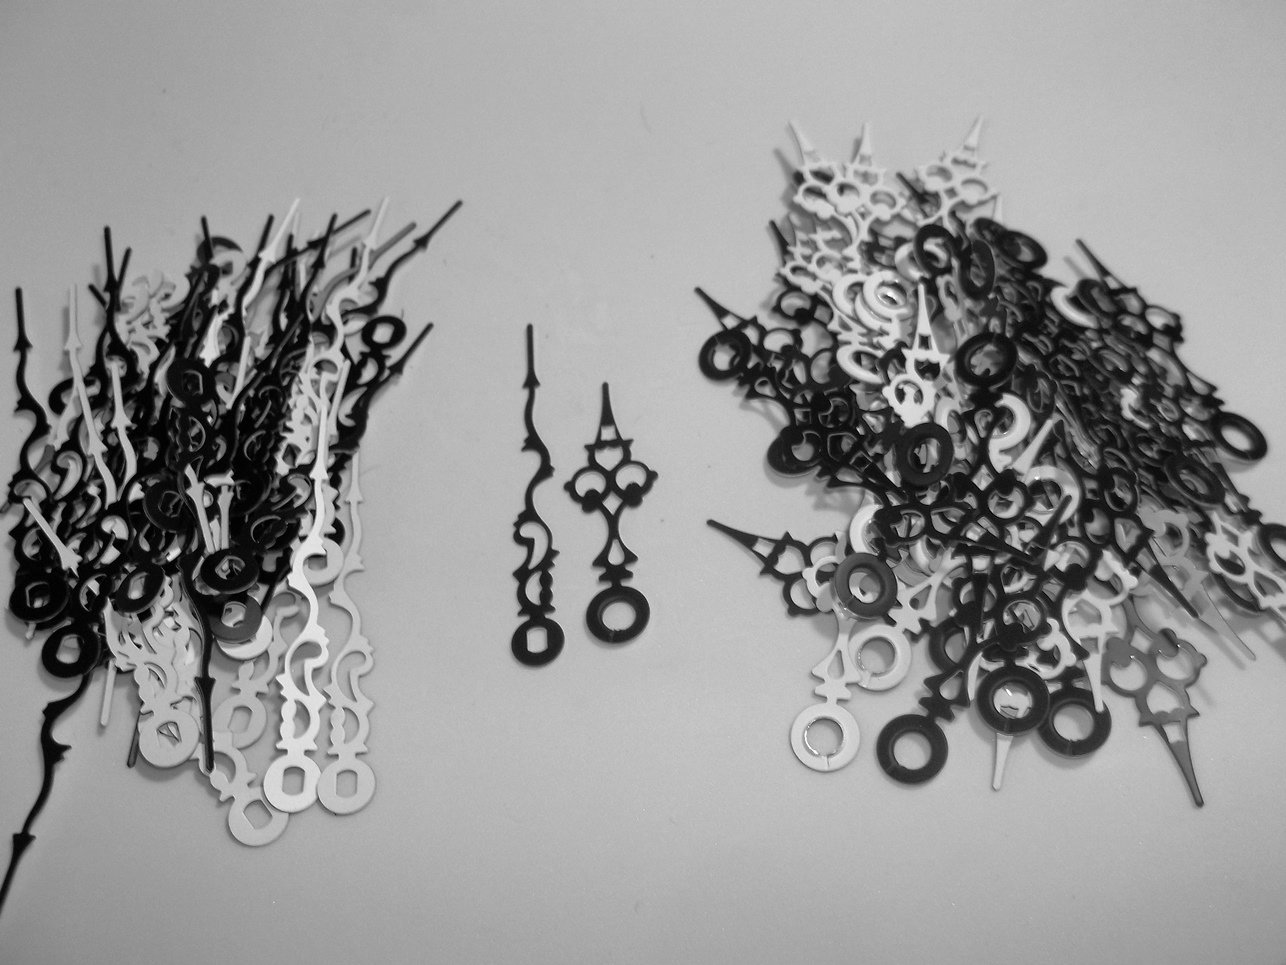 25 Pairs New Black Serpentine Clock Hands (No9) For Scrapbooking, Steampunk, Embellishment